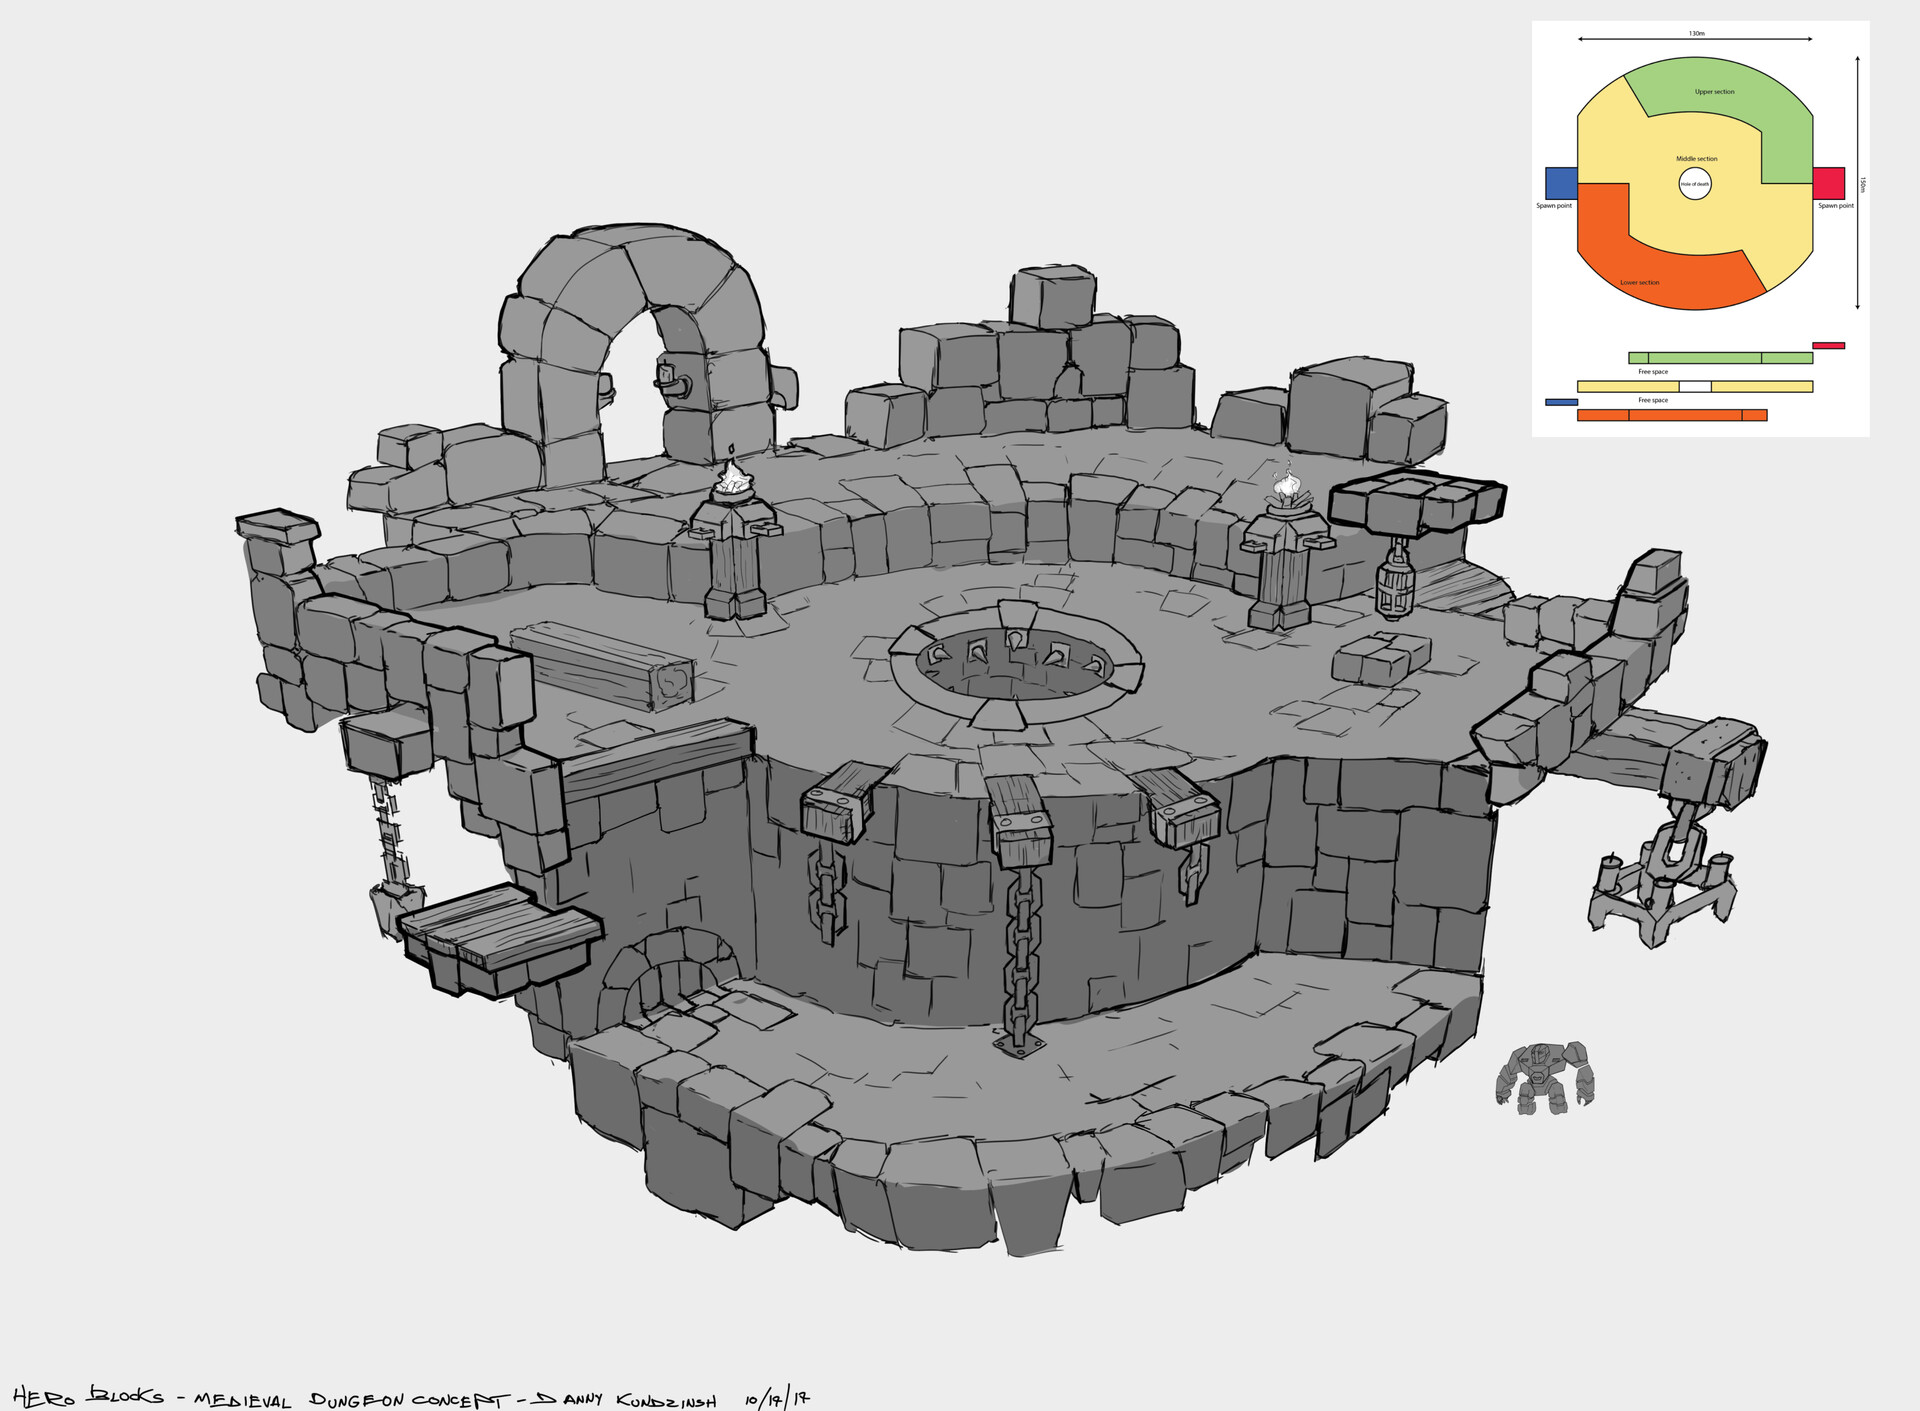 Danny kundzinsh hero blocks medieval dungeon map concept